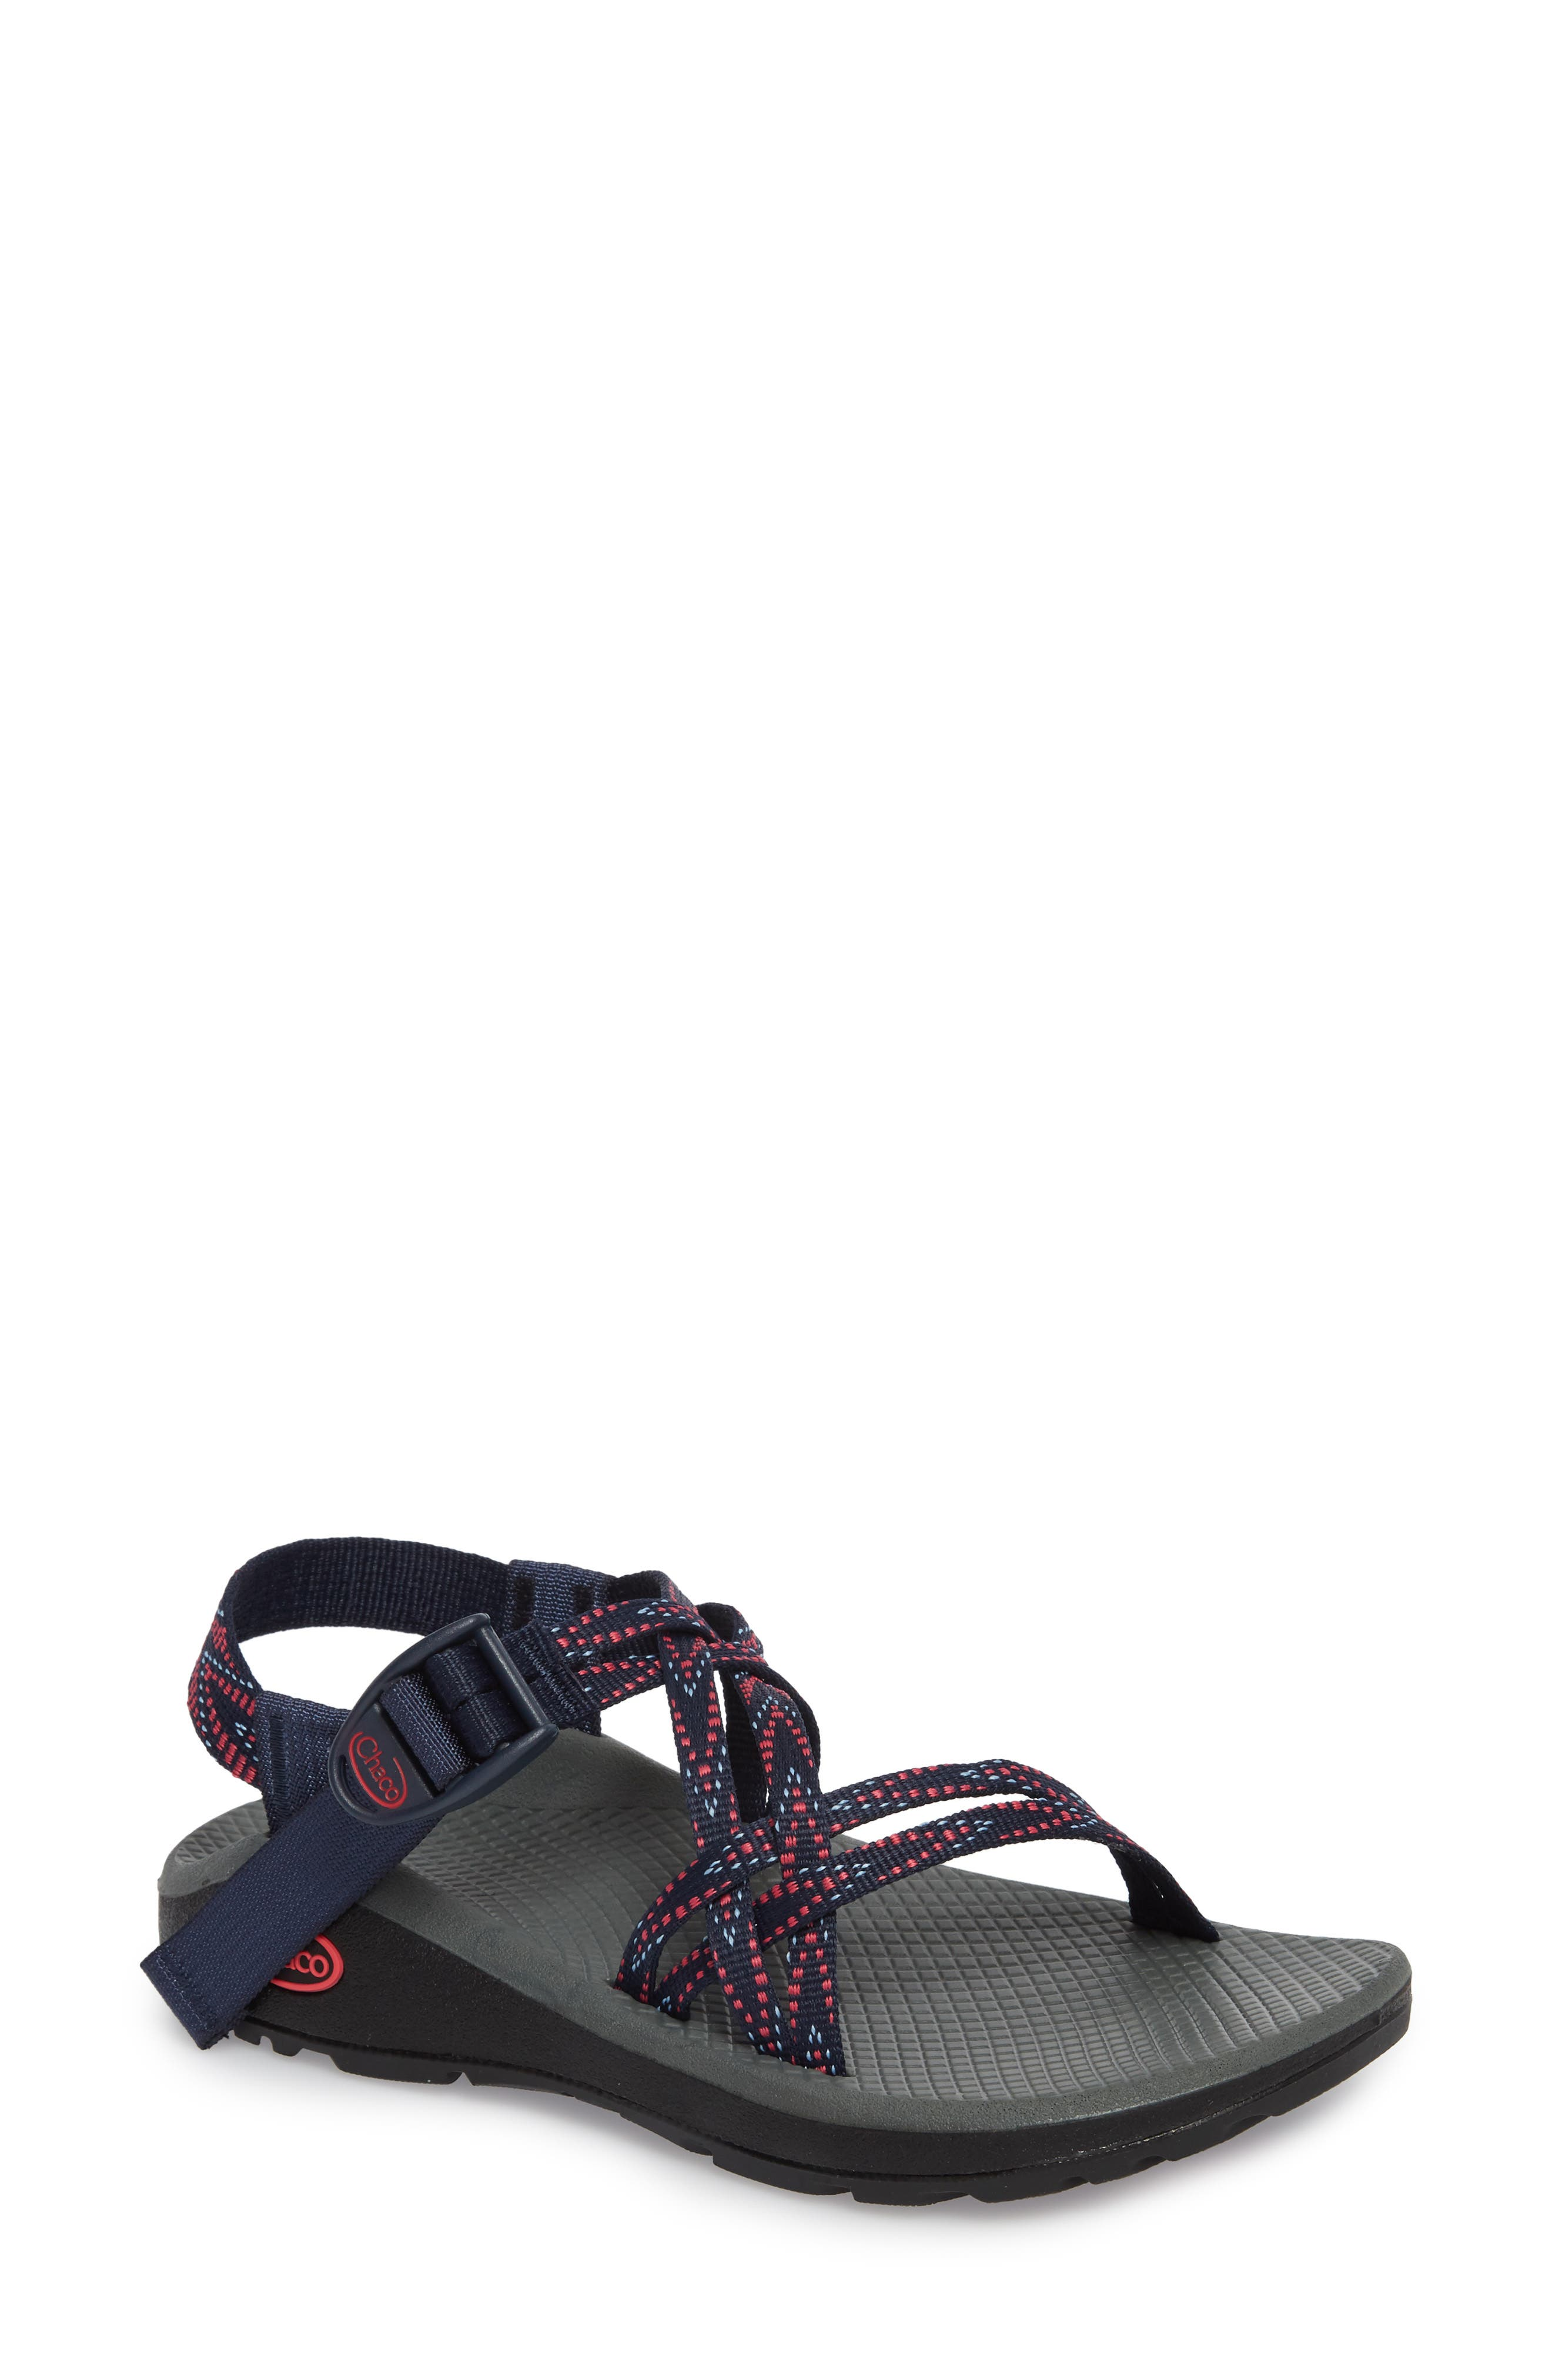 Main Image - Chaco Z/Cloud X Sport Sandal (Women)